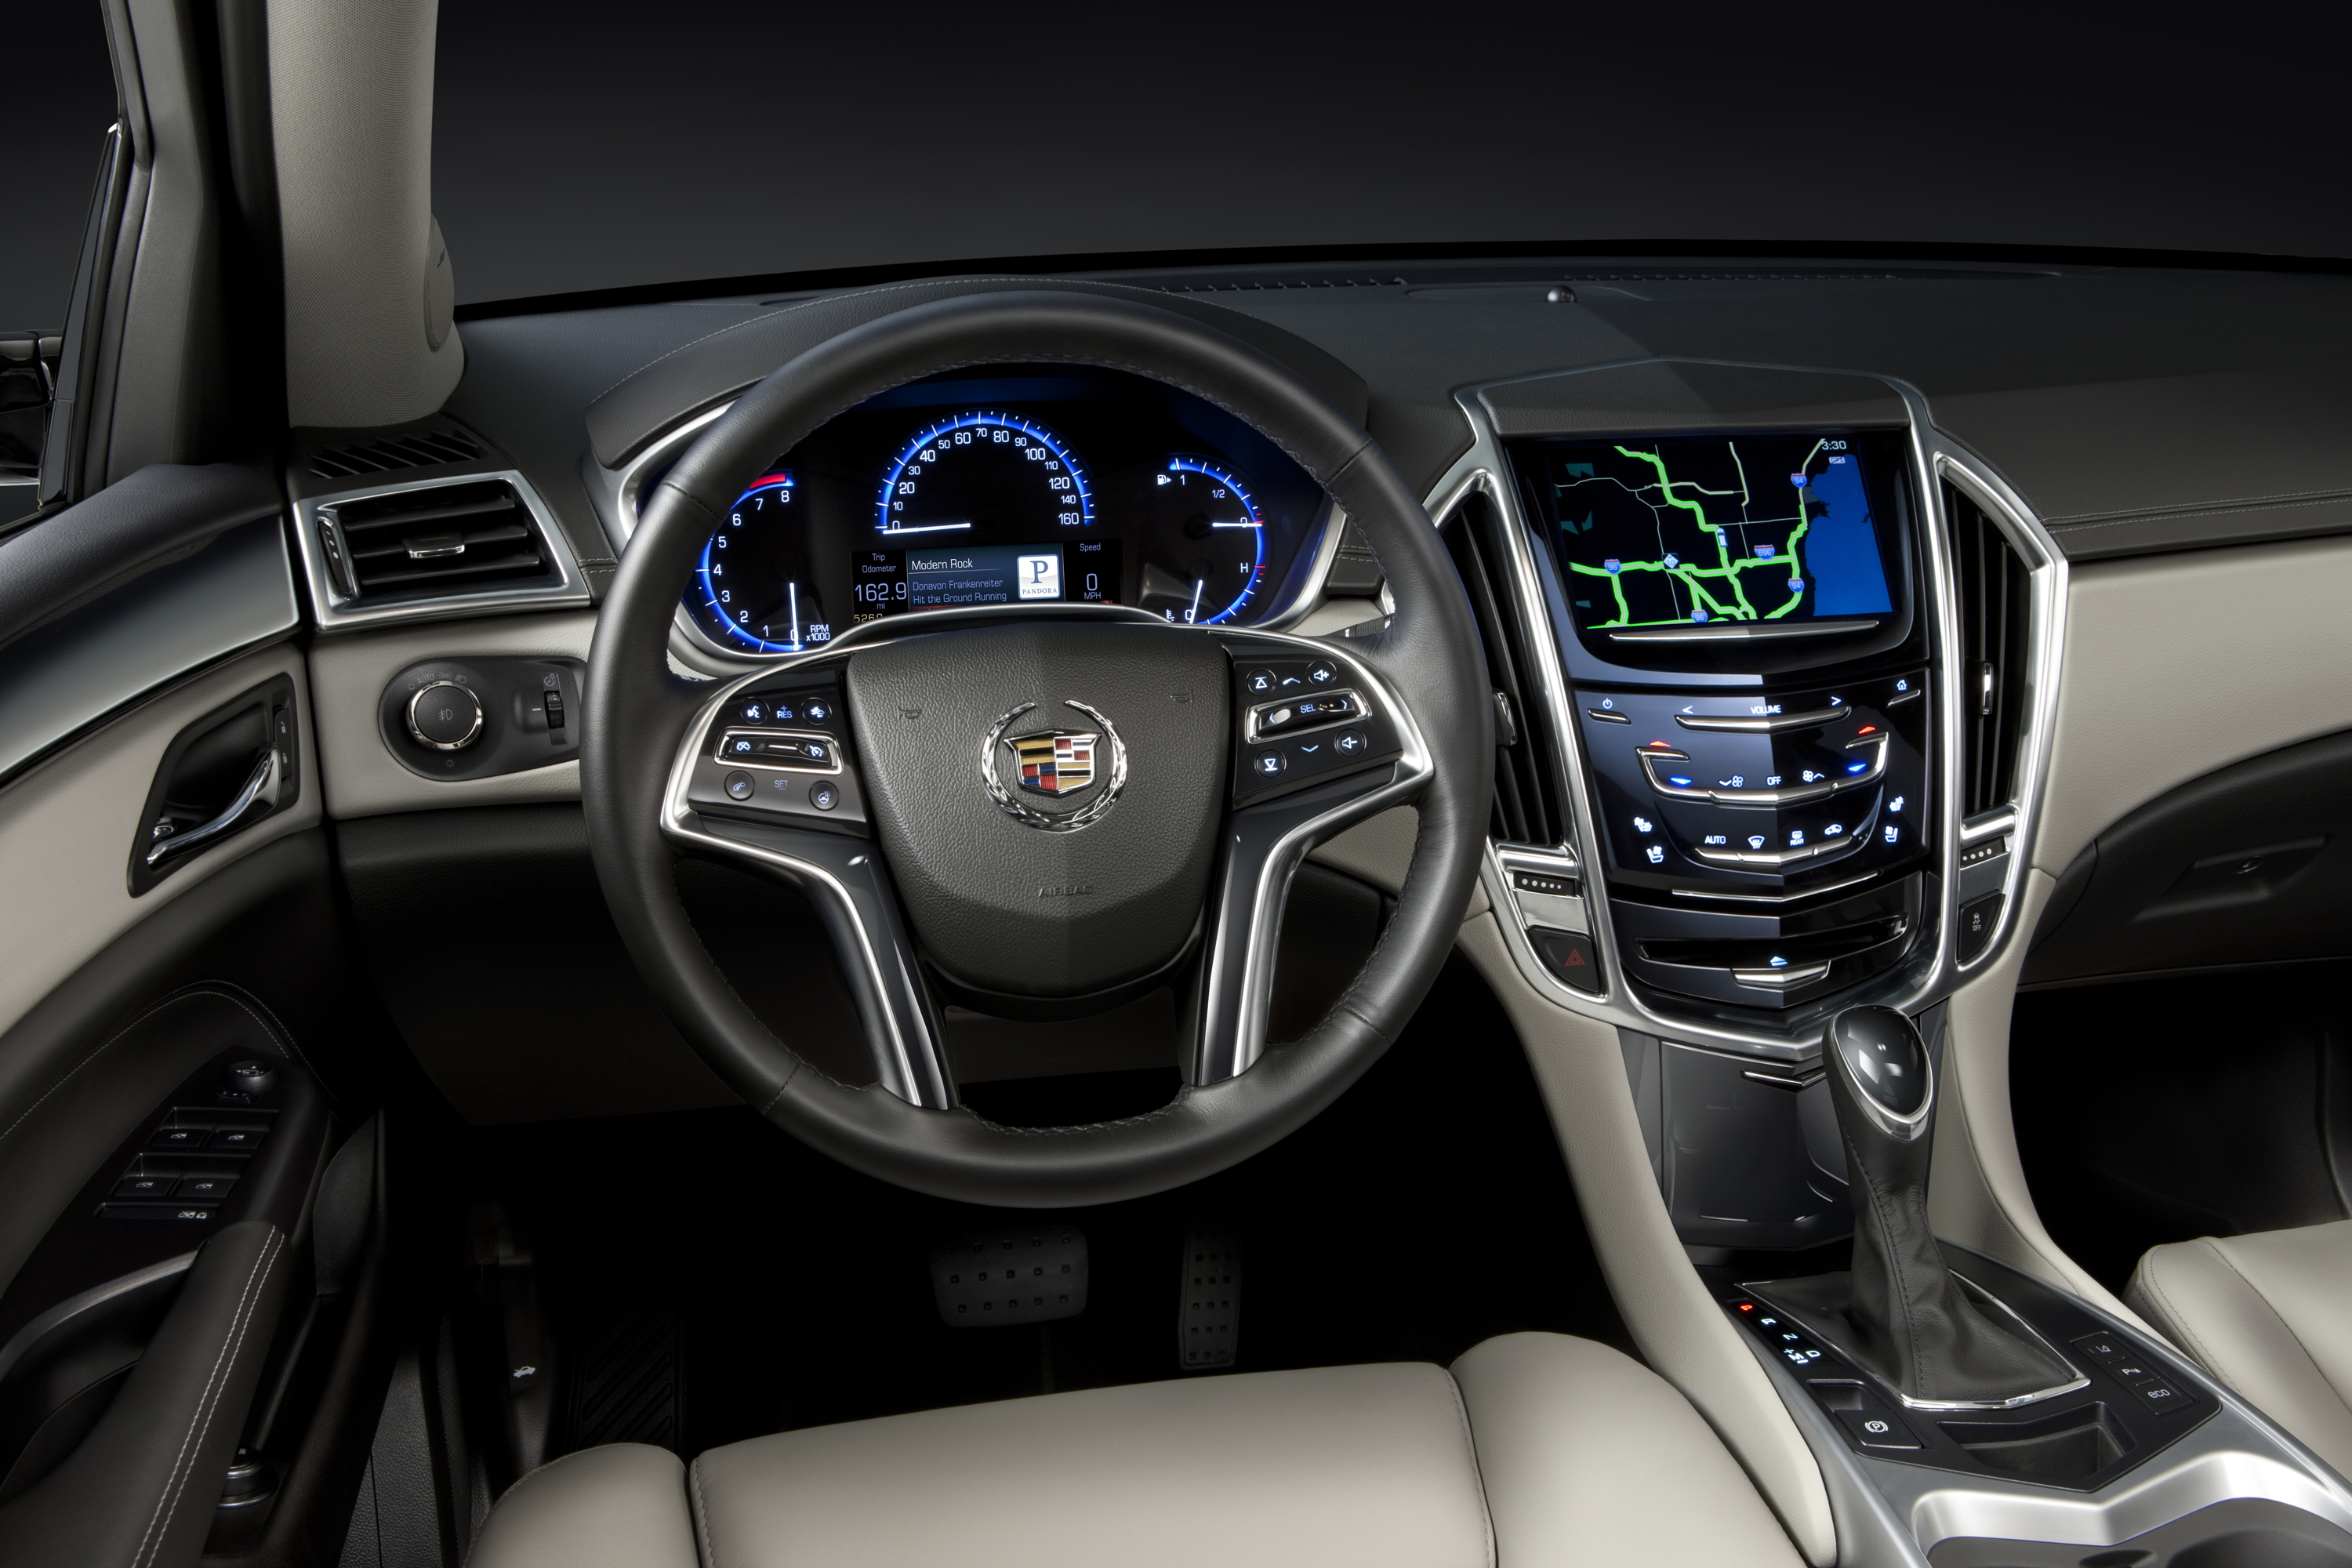 cadillac used vehicle srx review expert of